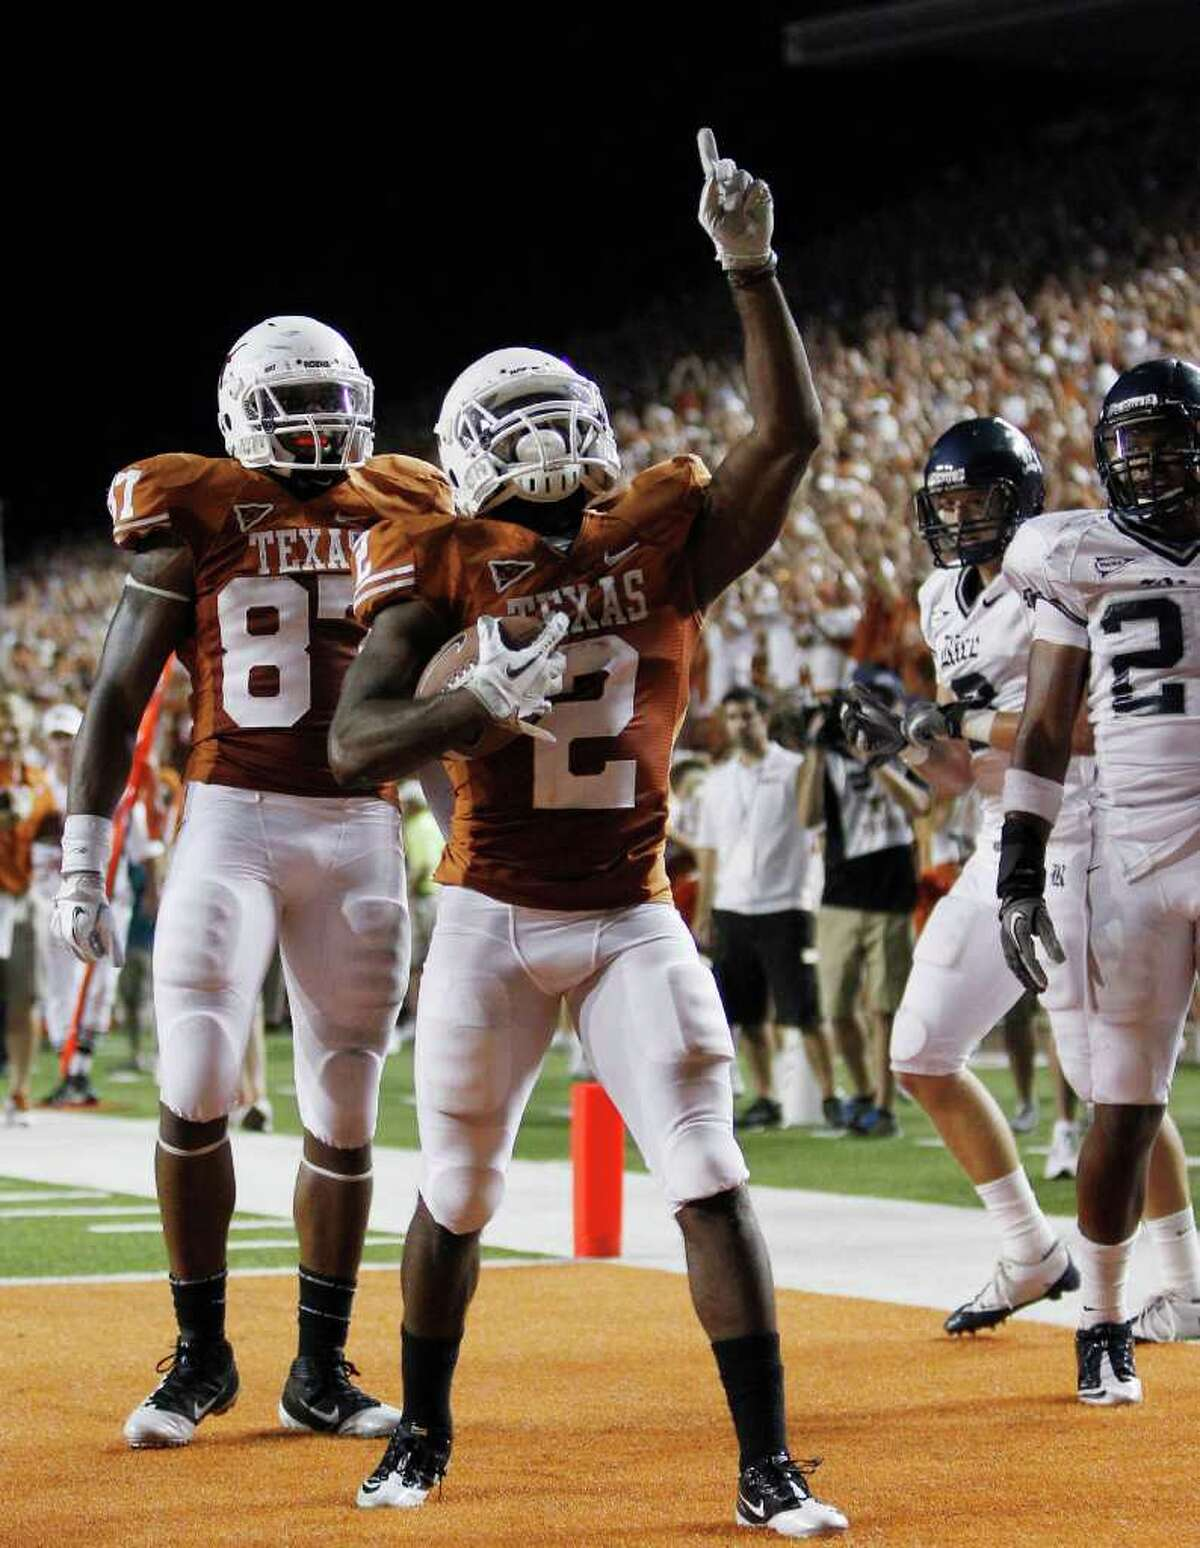 UT running back Fozzy Whittaker (2) celebrates after scoring a touchdown during the fourth quarter Saturday vs. Rice.